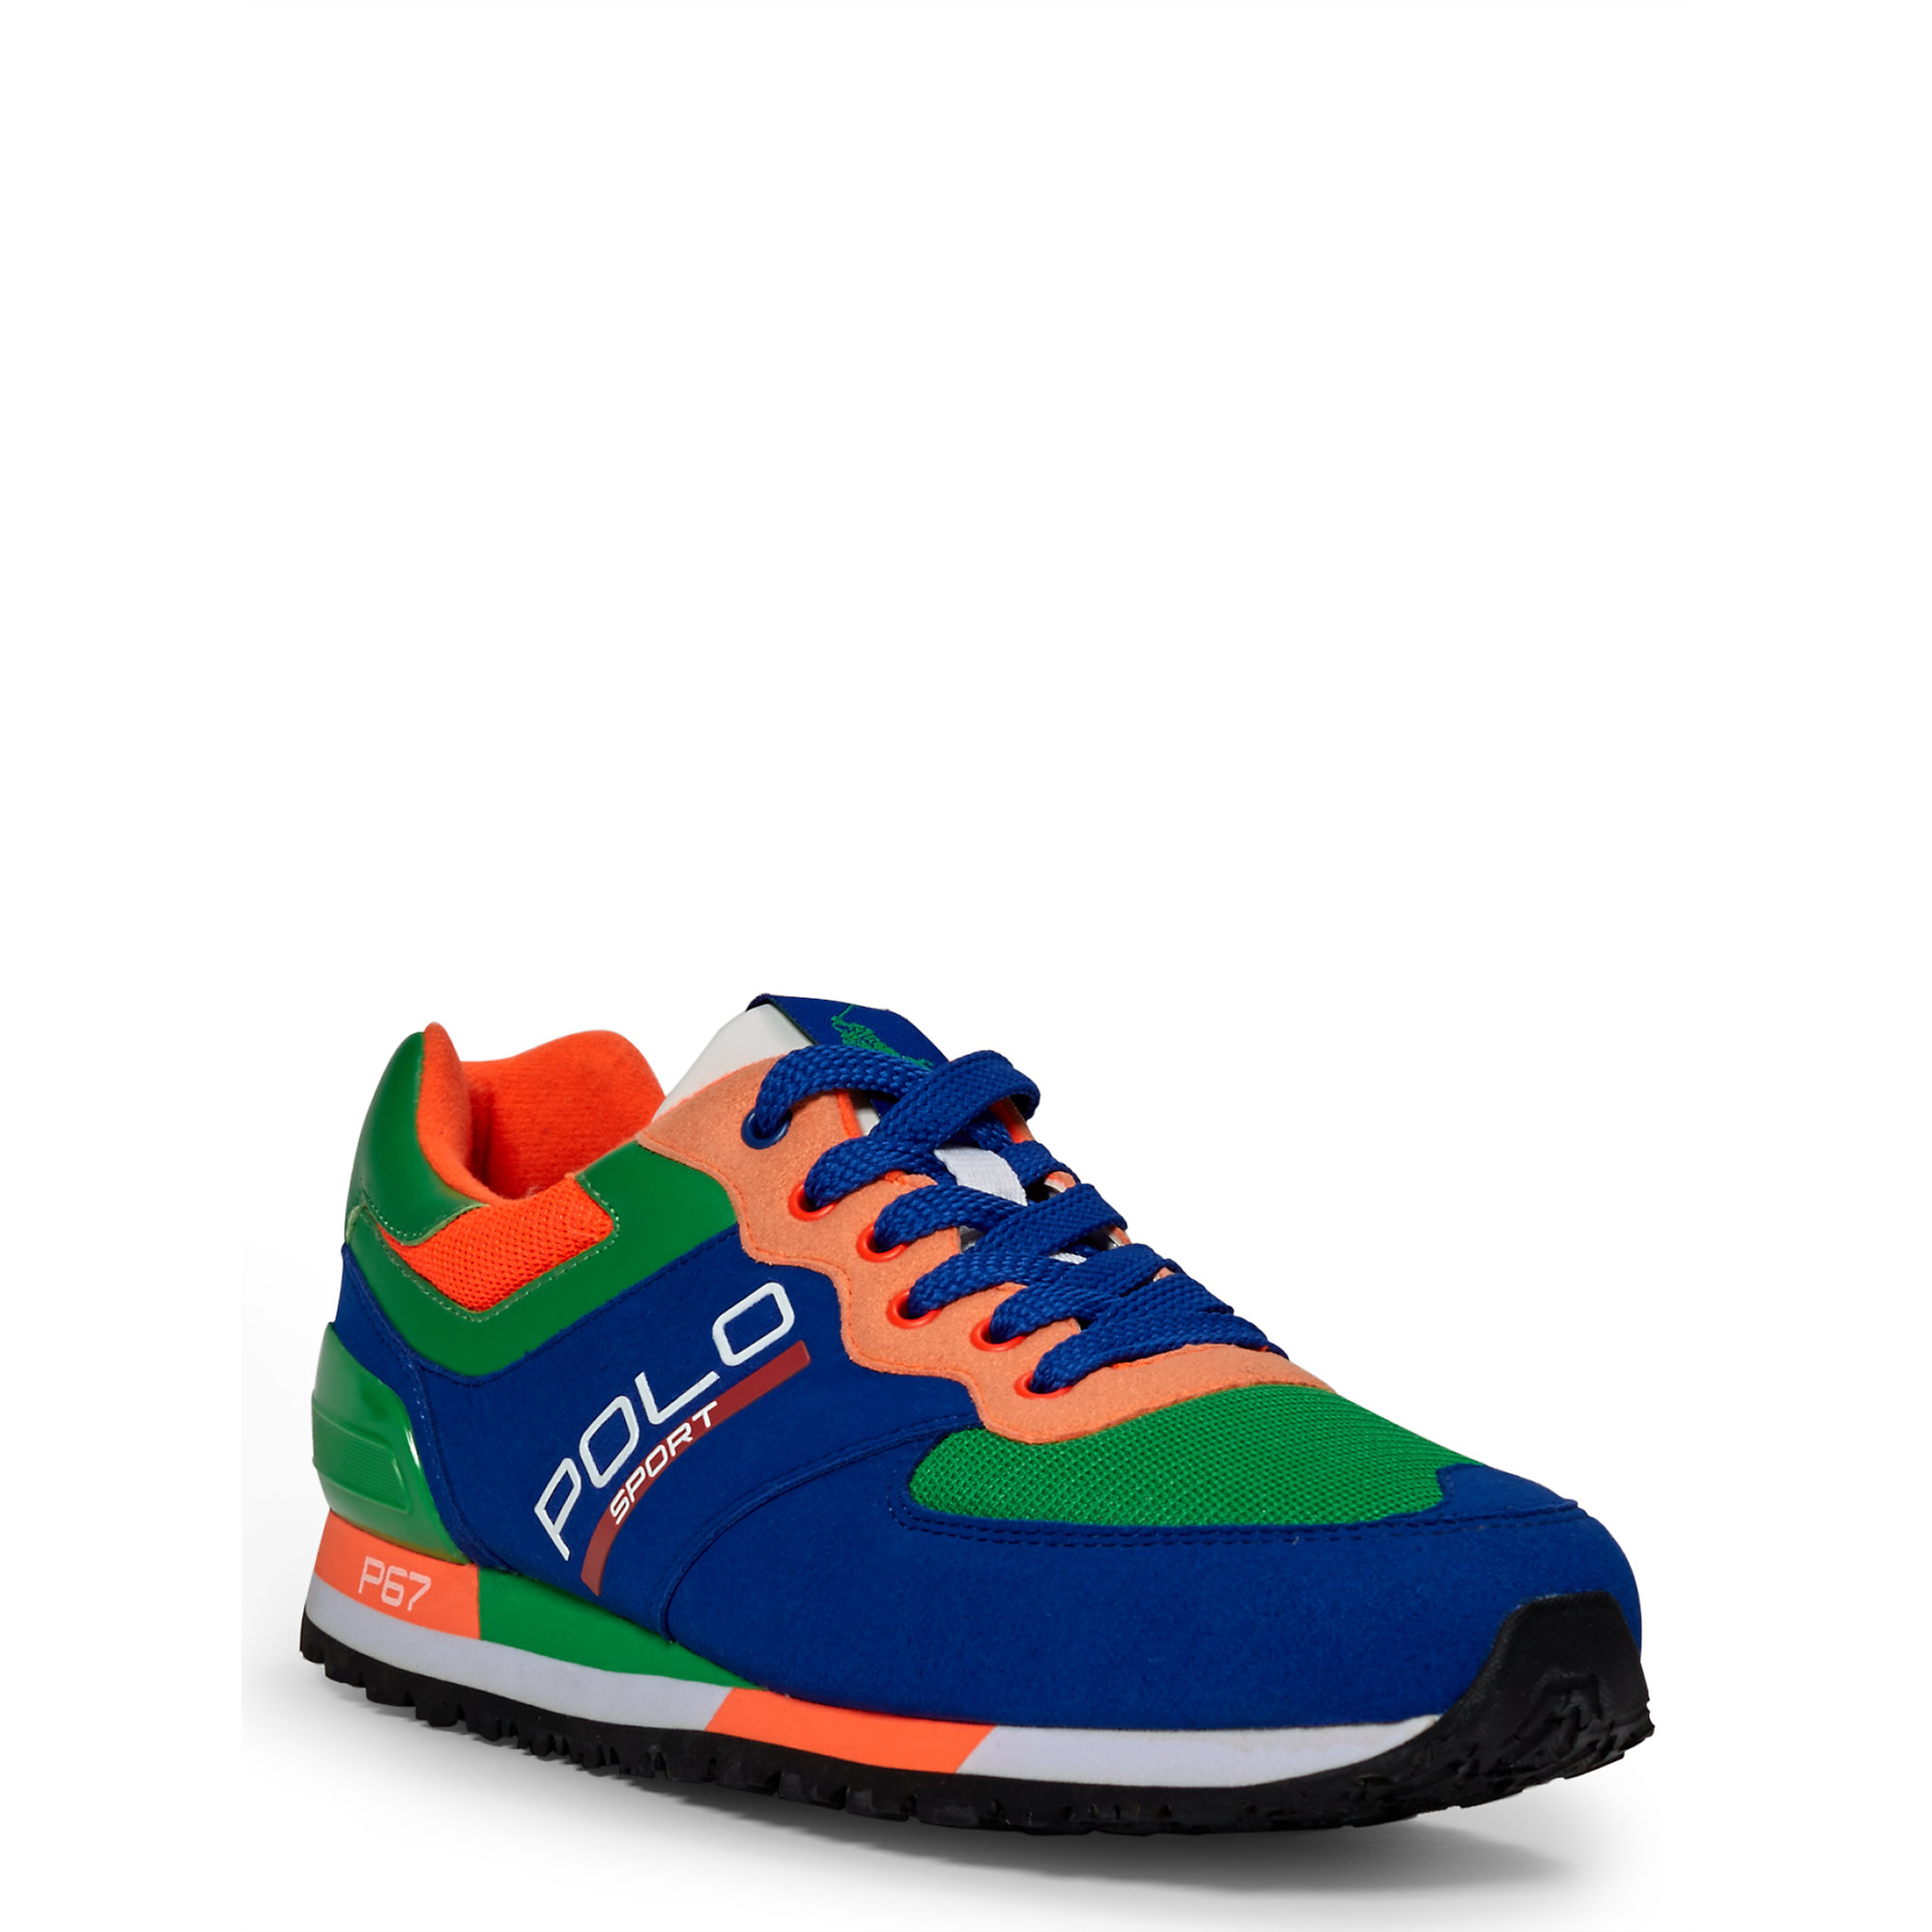 Sneaker For Men Tech Ralph Lauren Slaton Multicolor Polo Lc34A5jRq